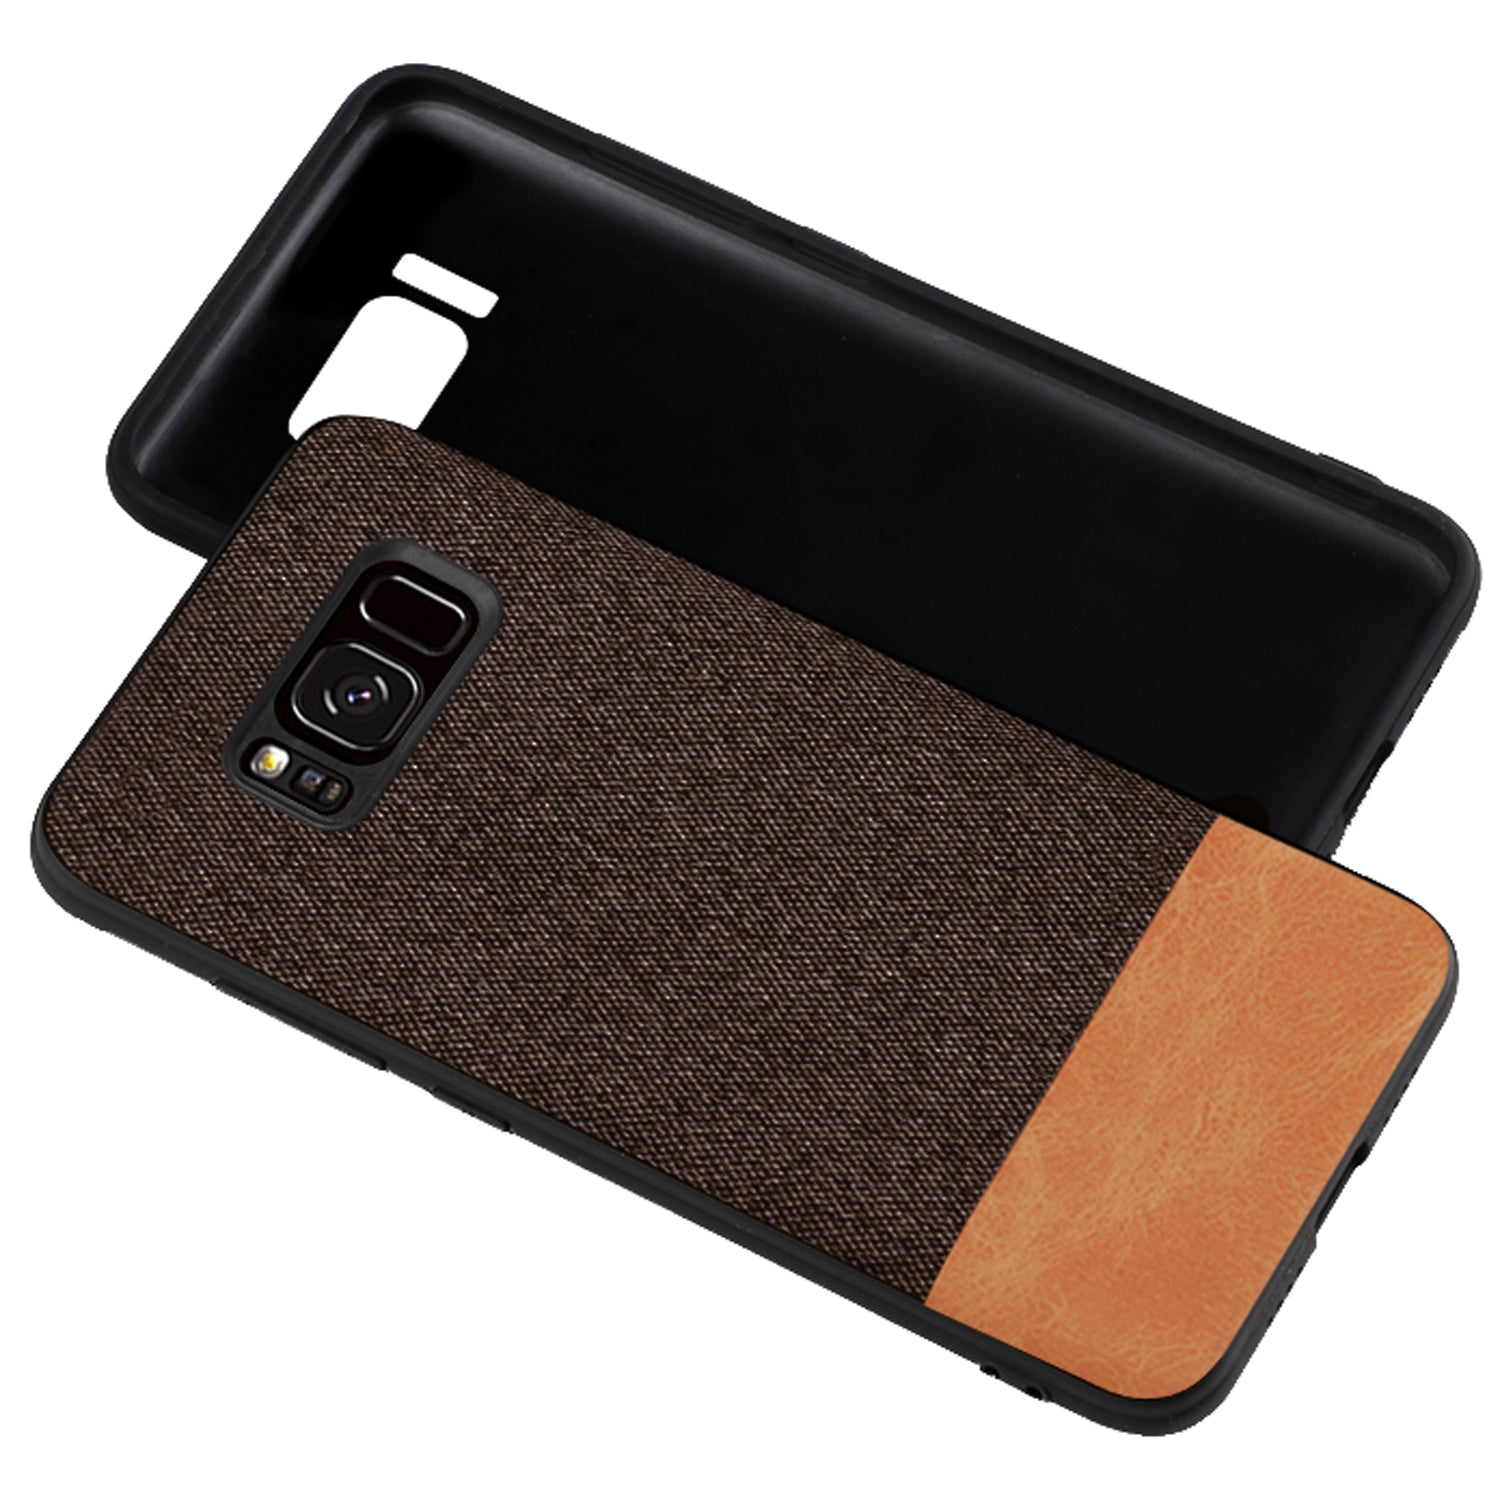 Fabric + Leather Hybrid Protective Case Cover for Samsung Galaxy S8+ (PLUS) -  Brown - Mobizang